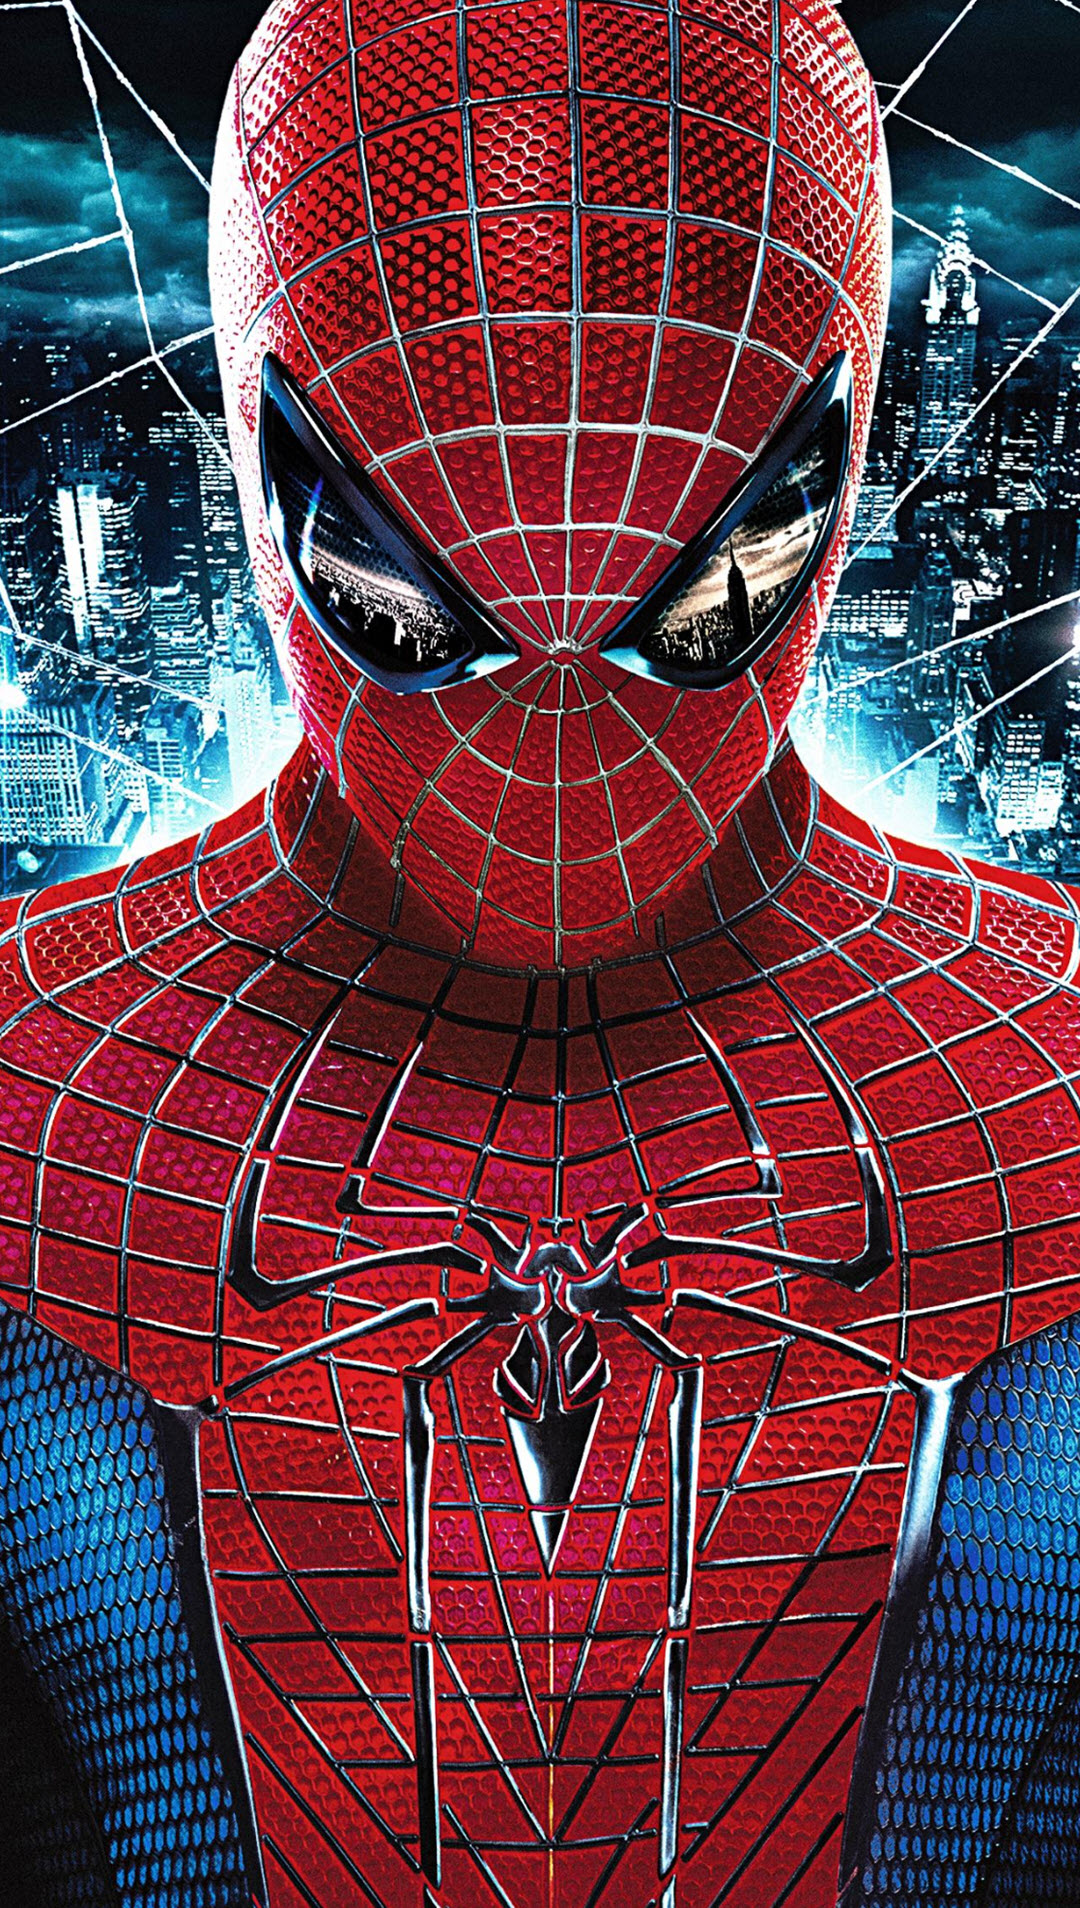 Top 15 Spider Man Wallpapers For Iphone Every Fan Must Check Out